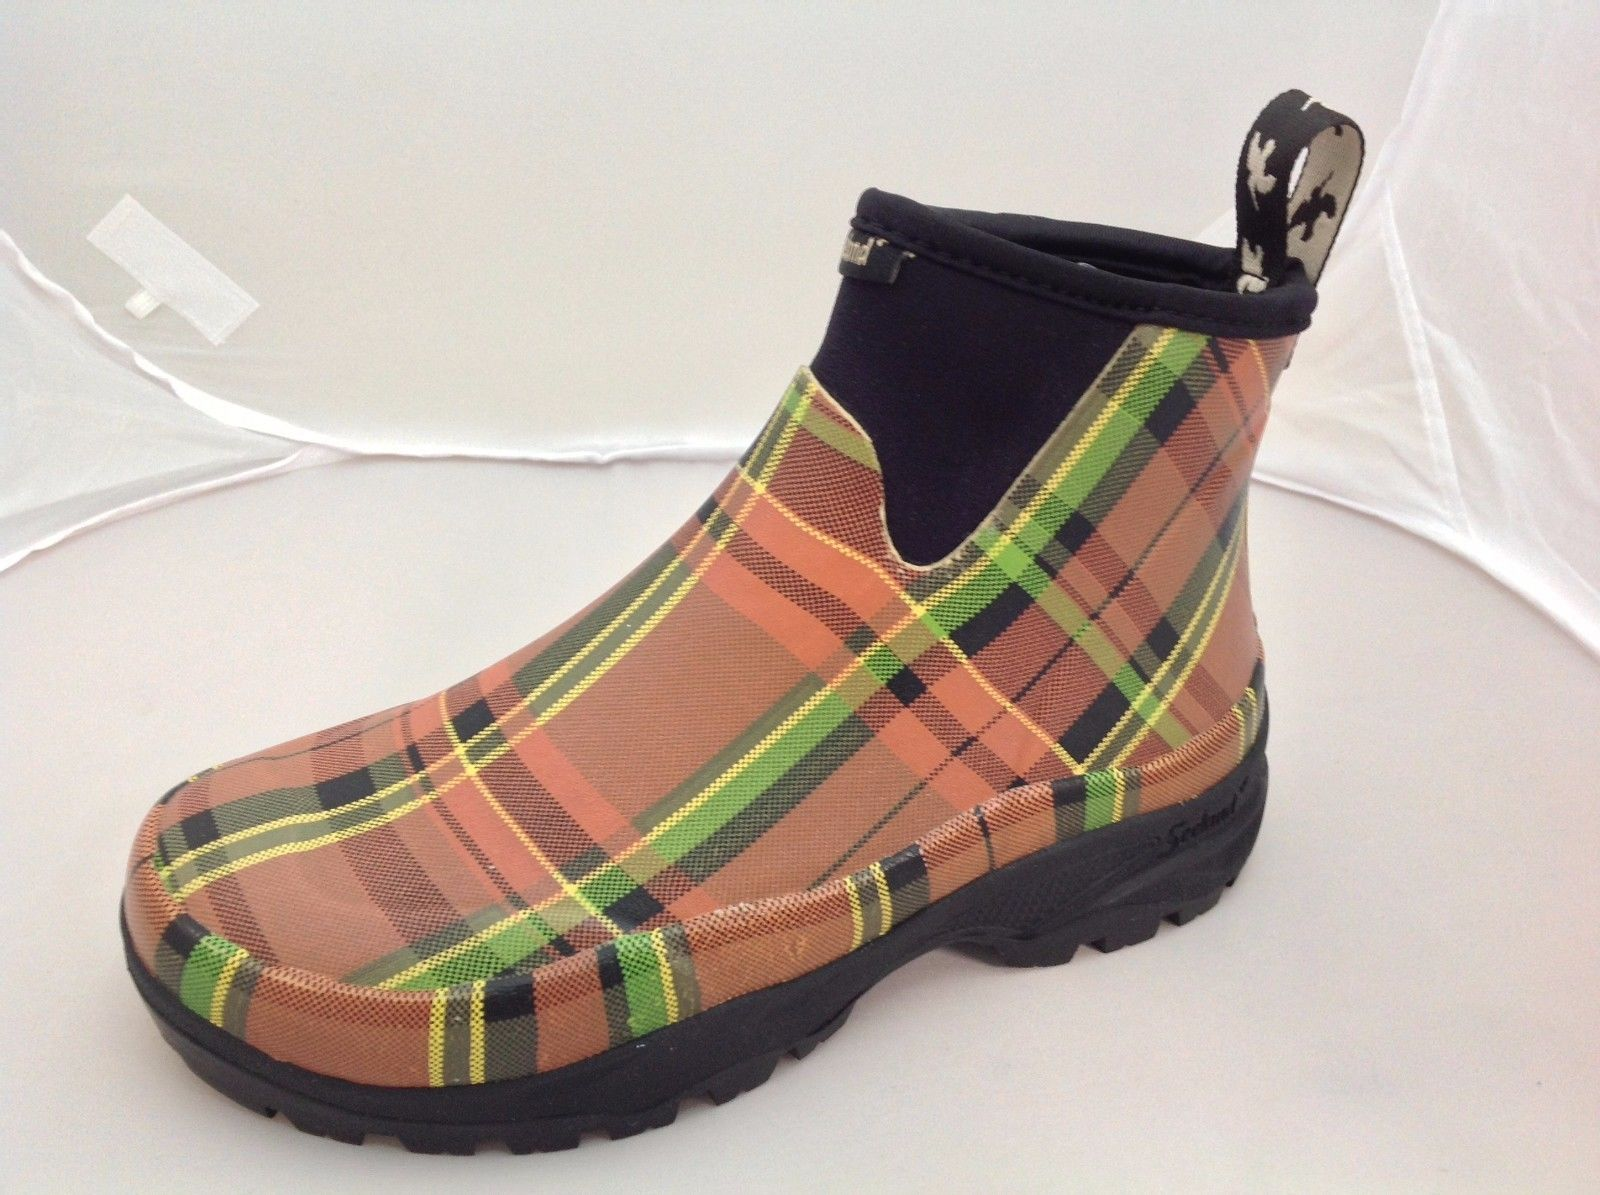 "Seeland Rainy Lady 6.5"" Waterproof Rubber Ankle Boots - reid outdoors"